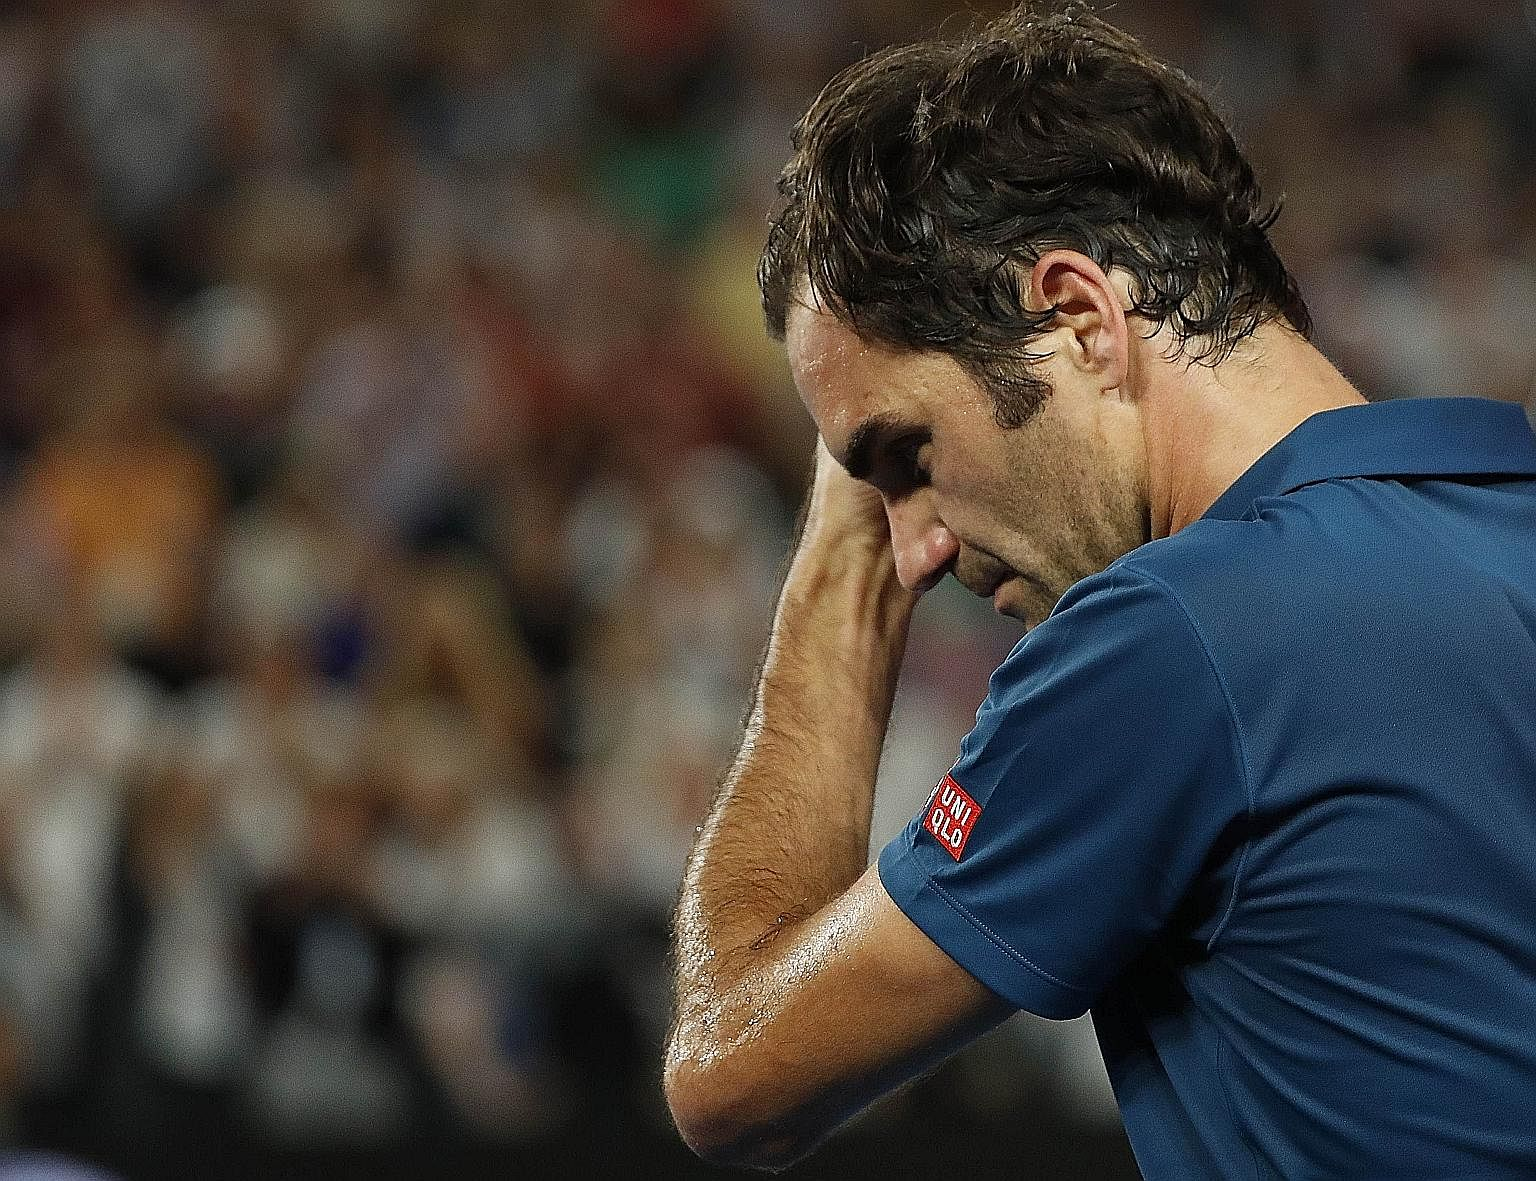 Greece's Stefanos Tsitsipas (left) in disbelief after his shock fourth-round win over defending champion Roger Federer at the Australian Open yesterday.